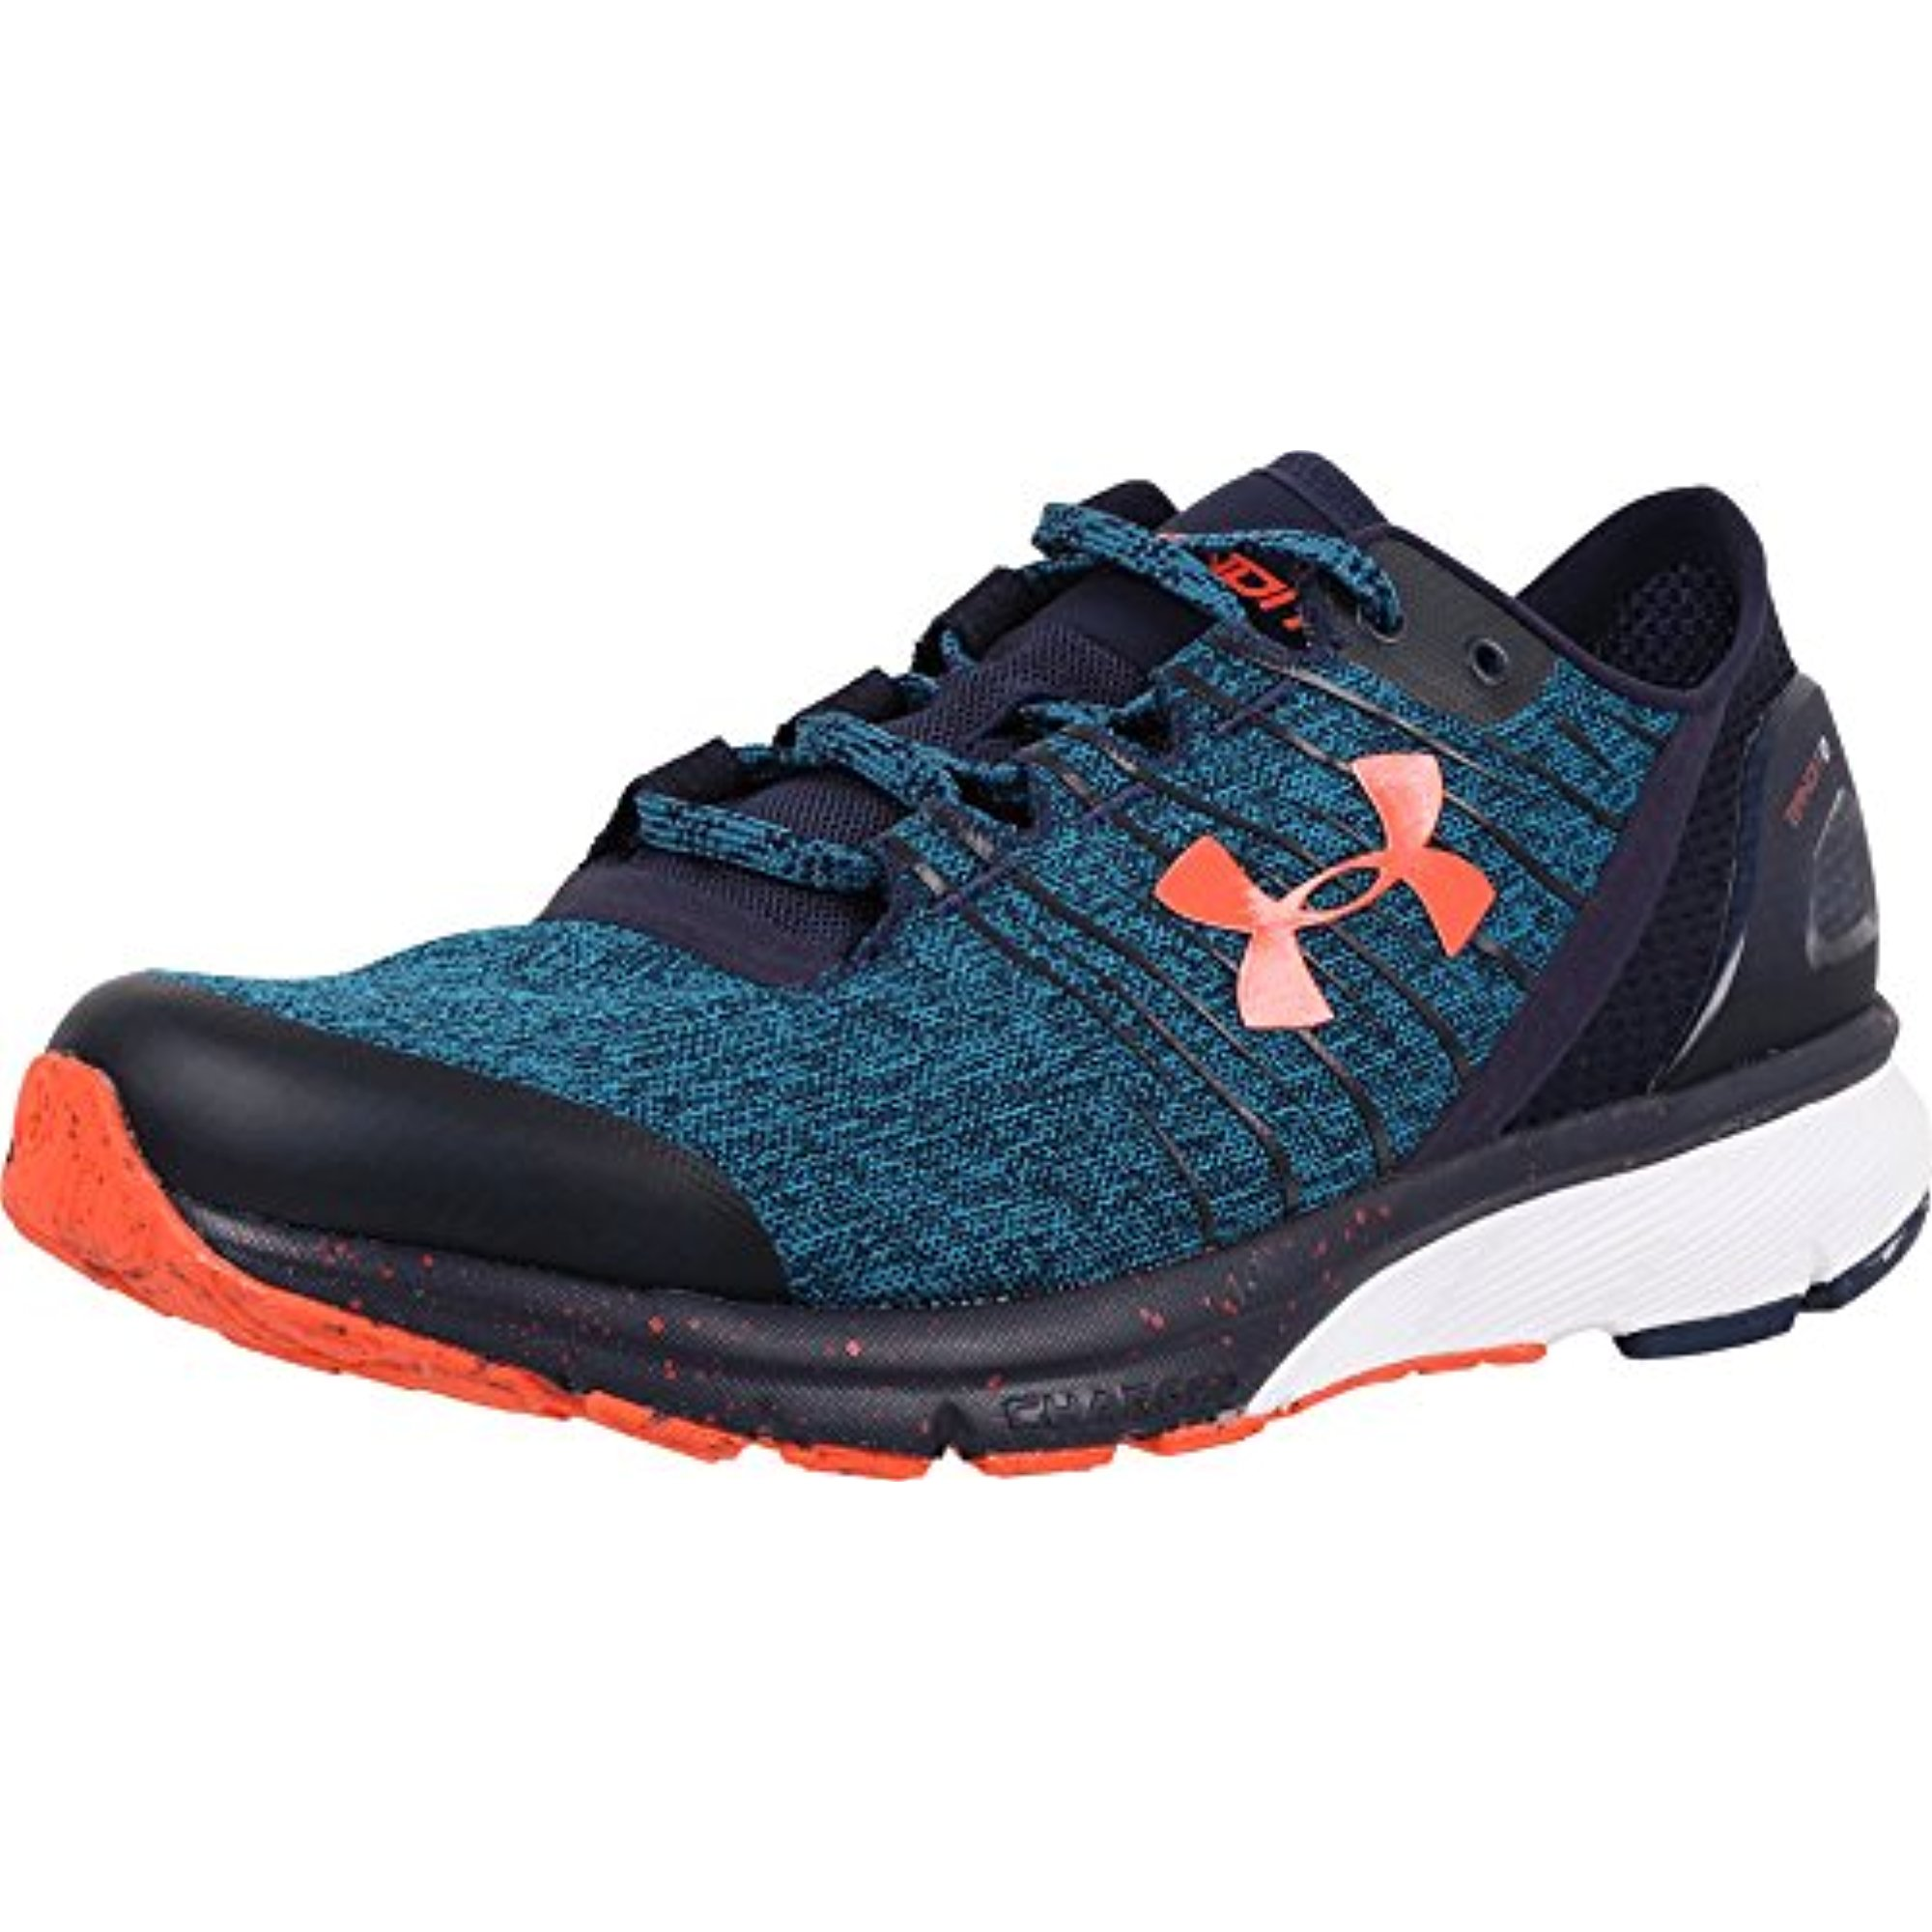 Under Armour Charged Bandit 2 Running Shoes - AW16 - 9 - ...